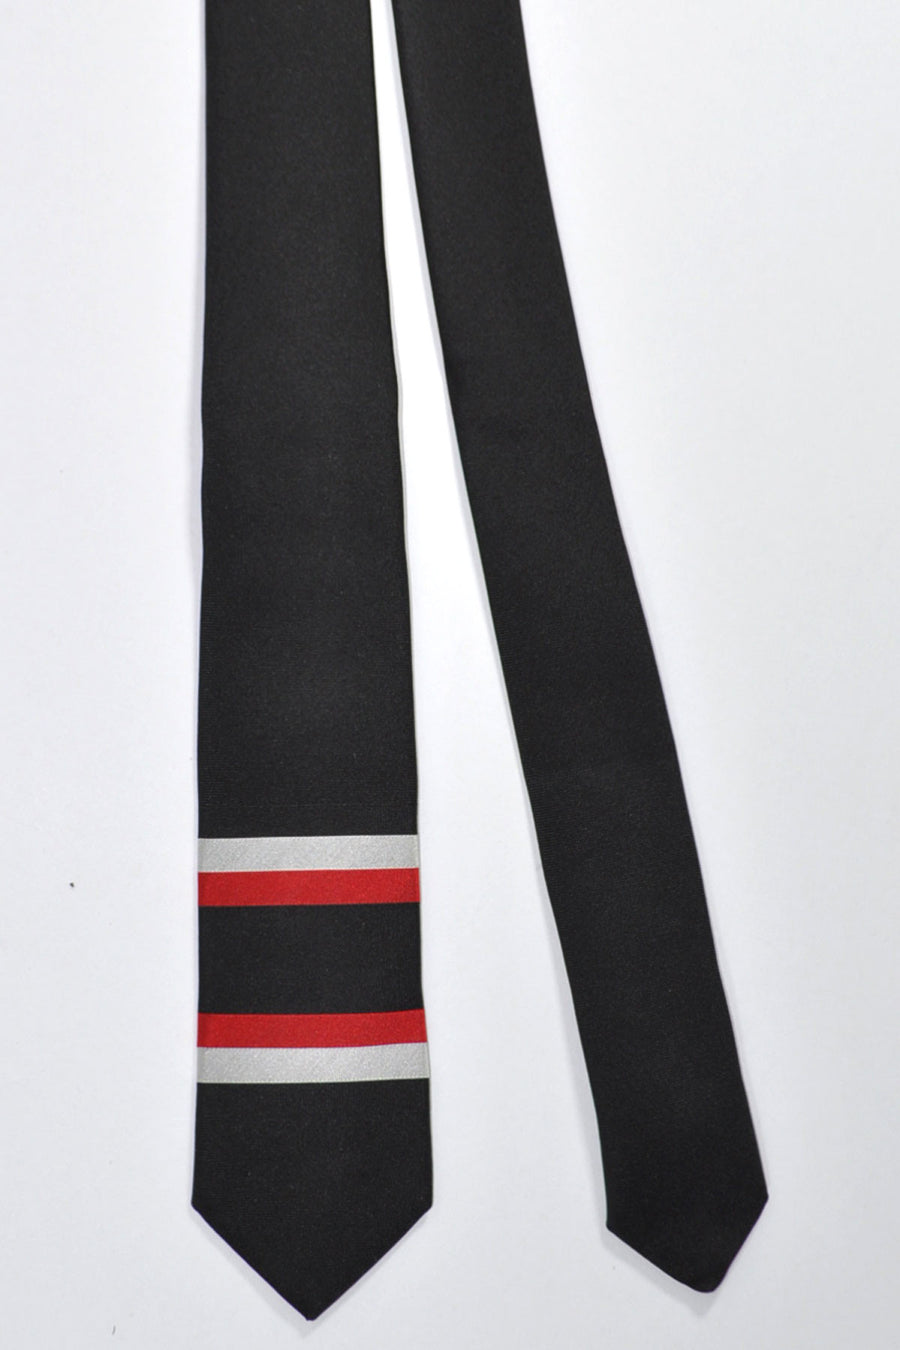 Givenchy Tie Black Red Silver Horizontal Stripes - Narrow Cut